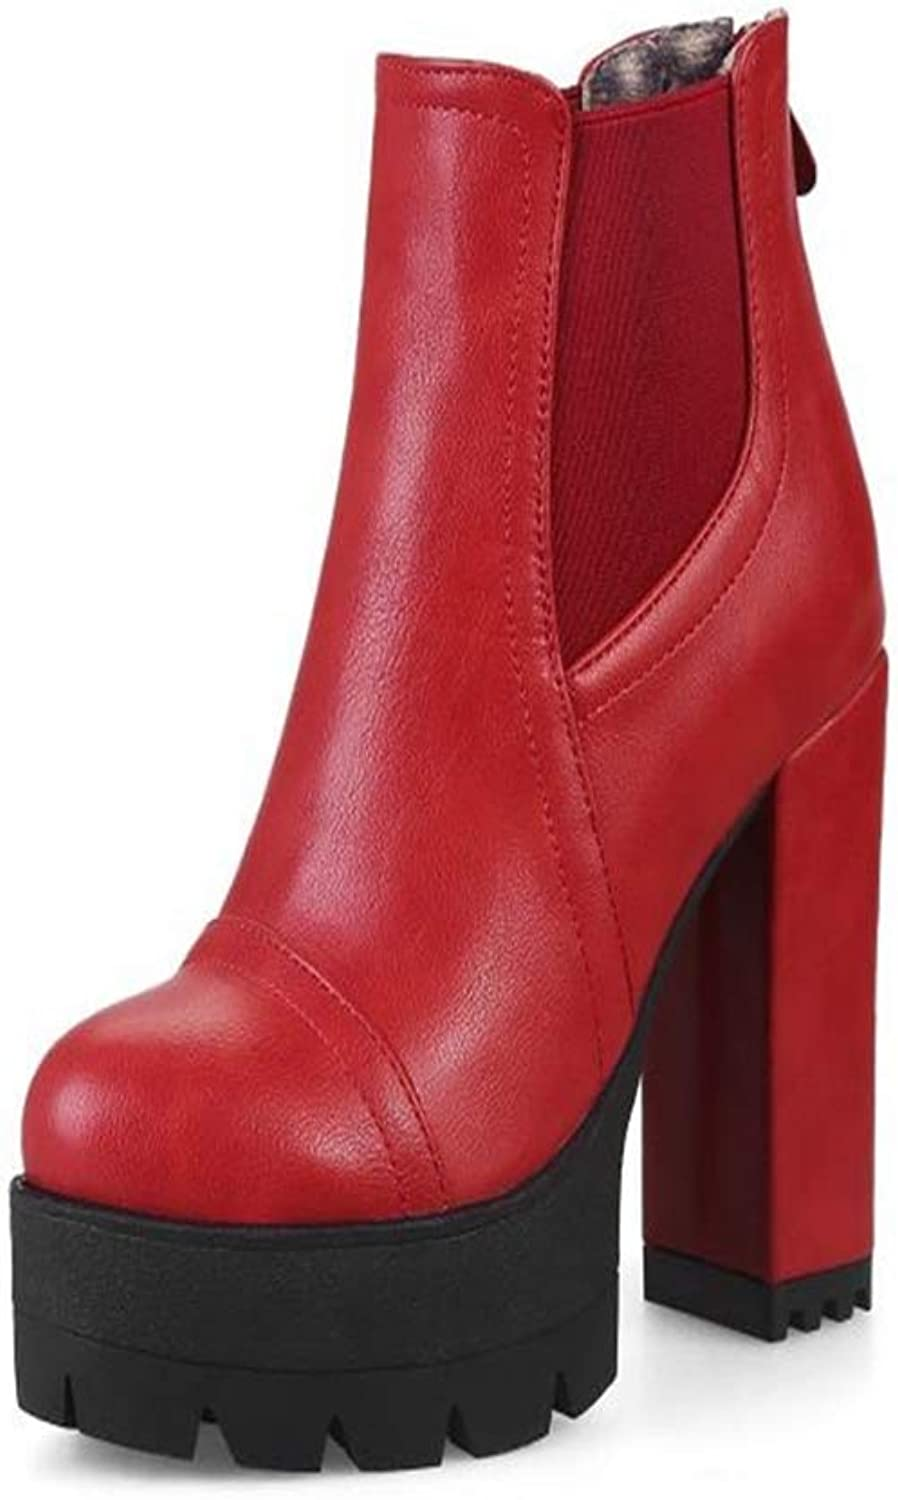 FORTUN High-Heeled Snow Boots, Elegant Thick Ankle Boots, Women's Martin Boots